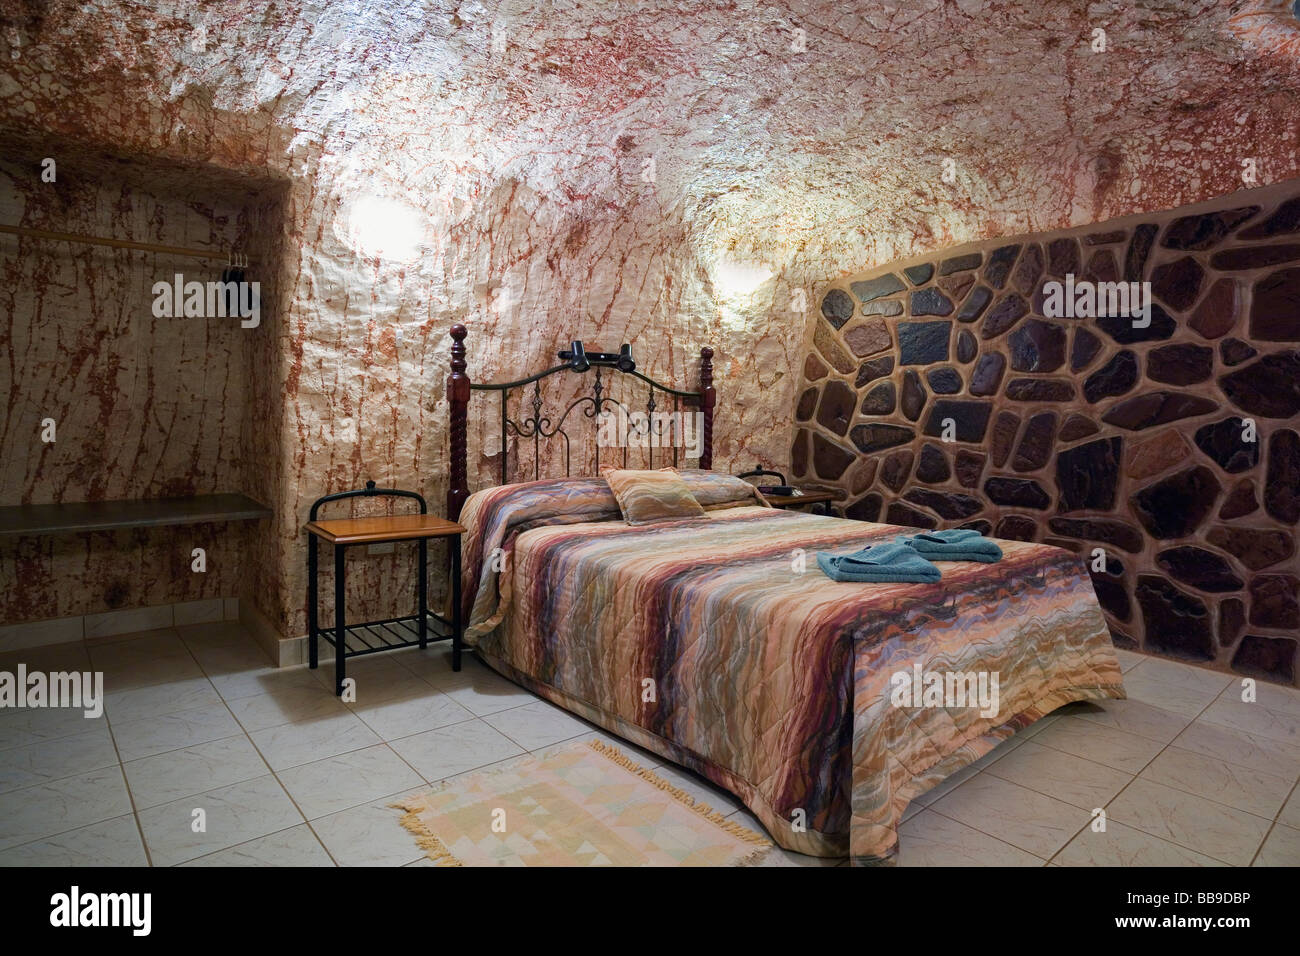 Underground room at radeka 39 s downunder dugout motel coober pedy stock photo royalty free image - Images of room ...